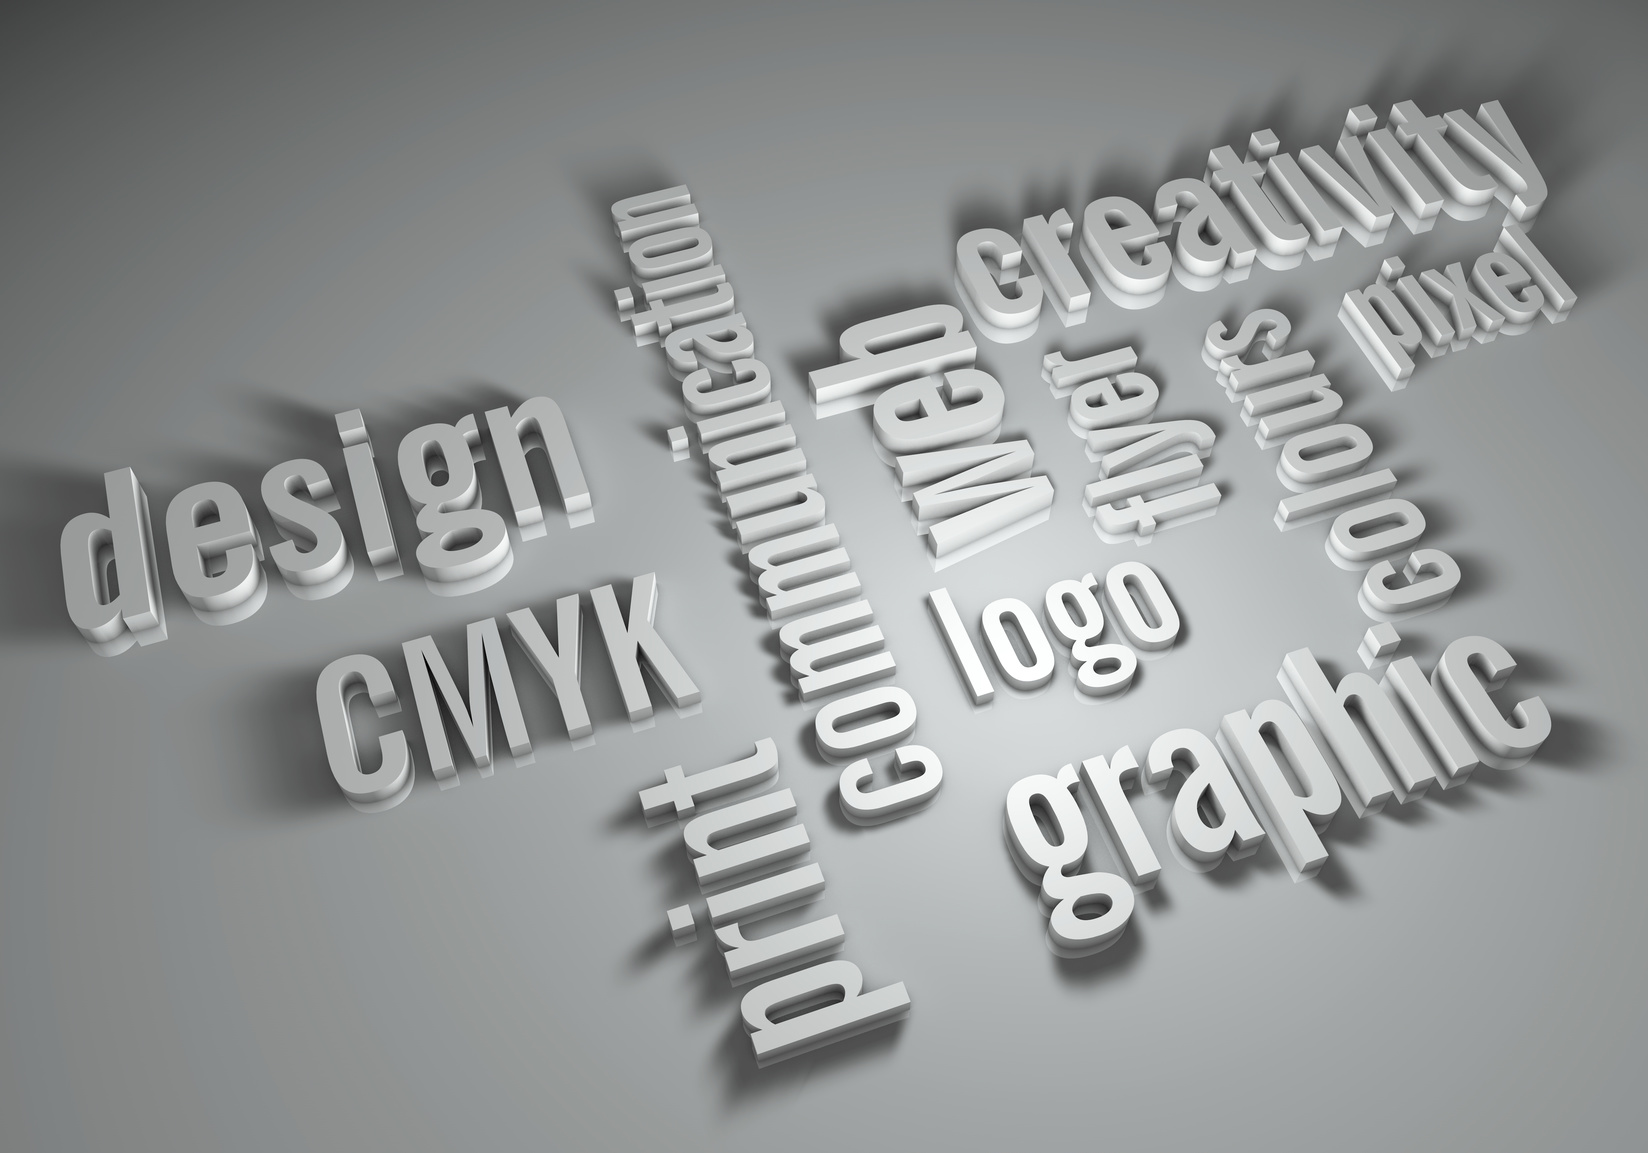 Web design word cloud and if you need a professional web design company you will find one here in Crown Point.